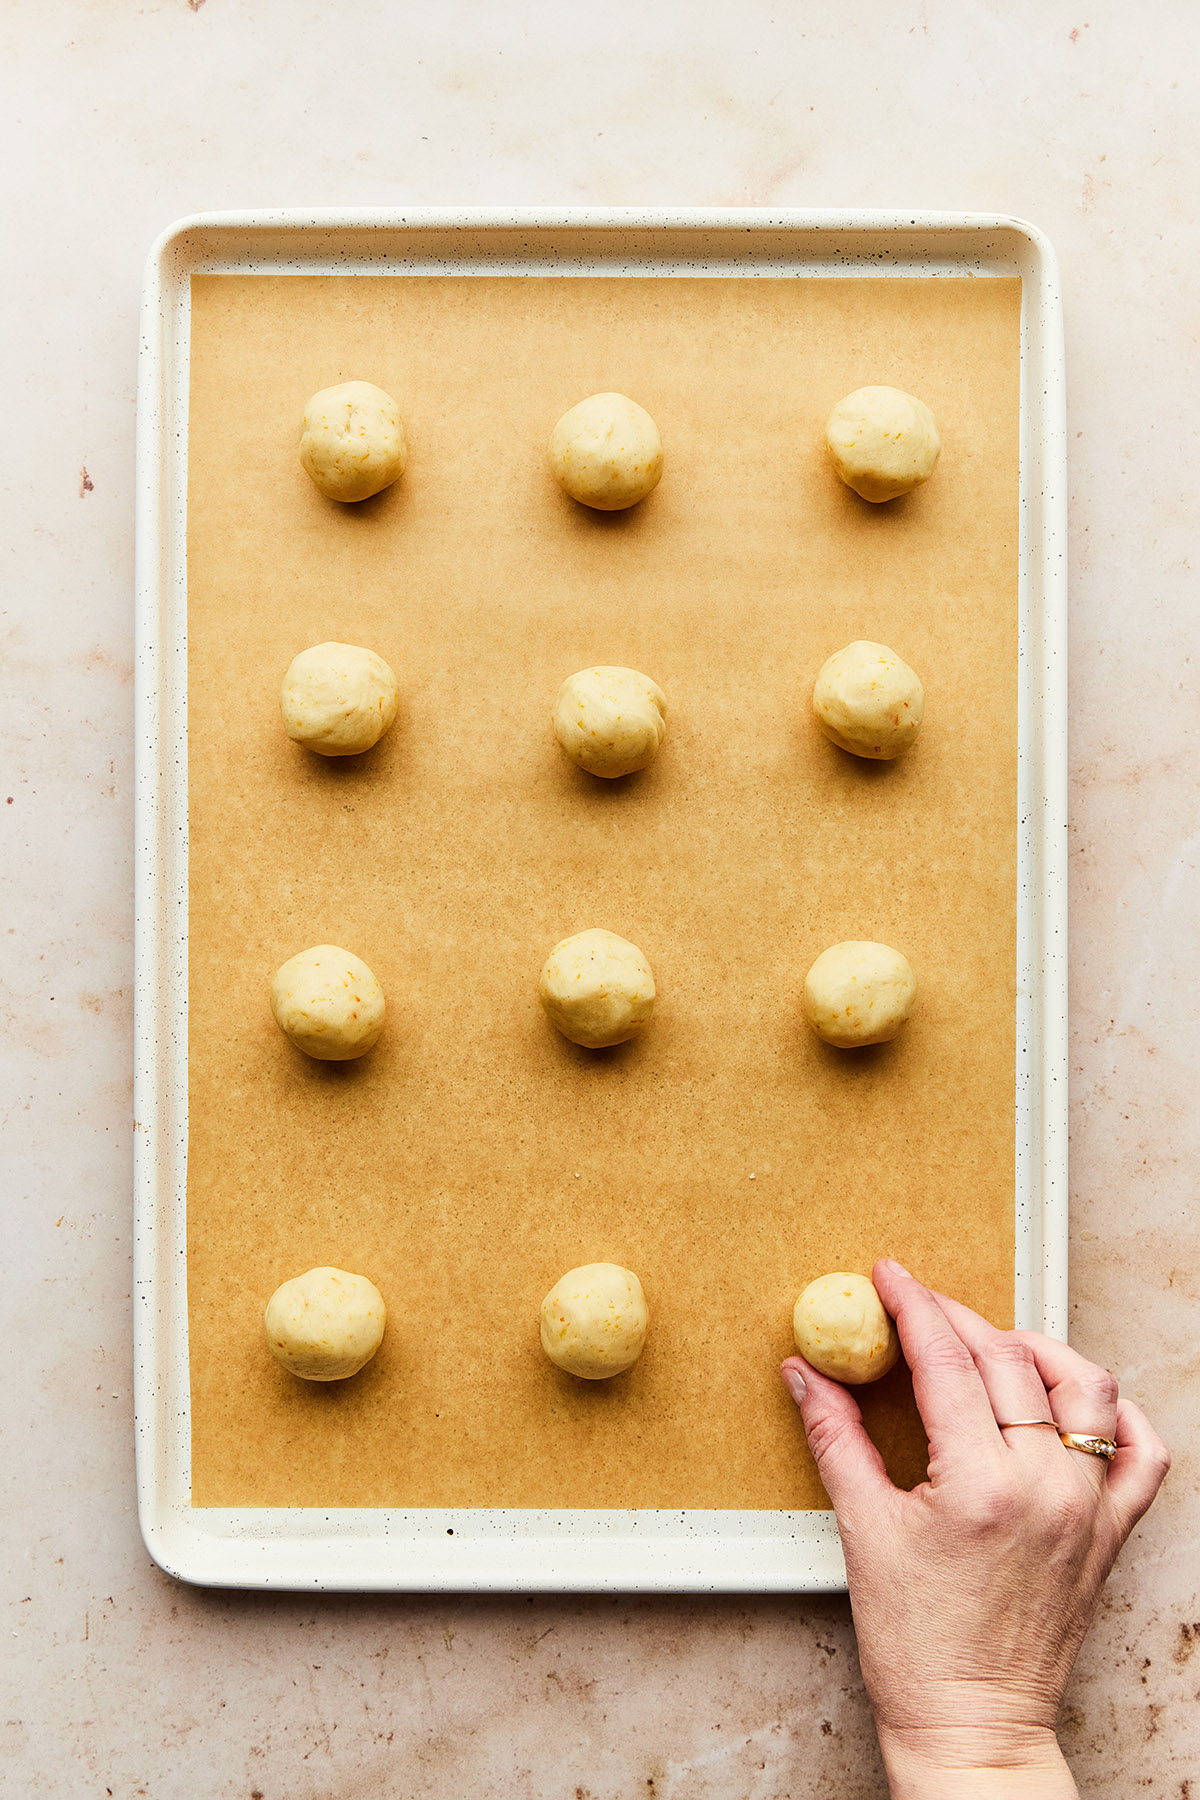 A hand placing the last of 12 unbaked Mexican wedding cookies on a baking sheet.